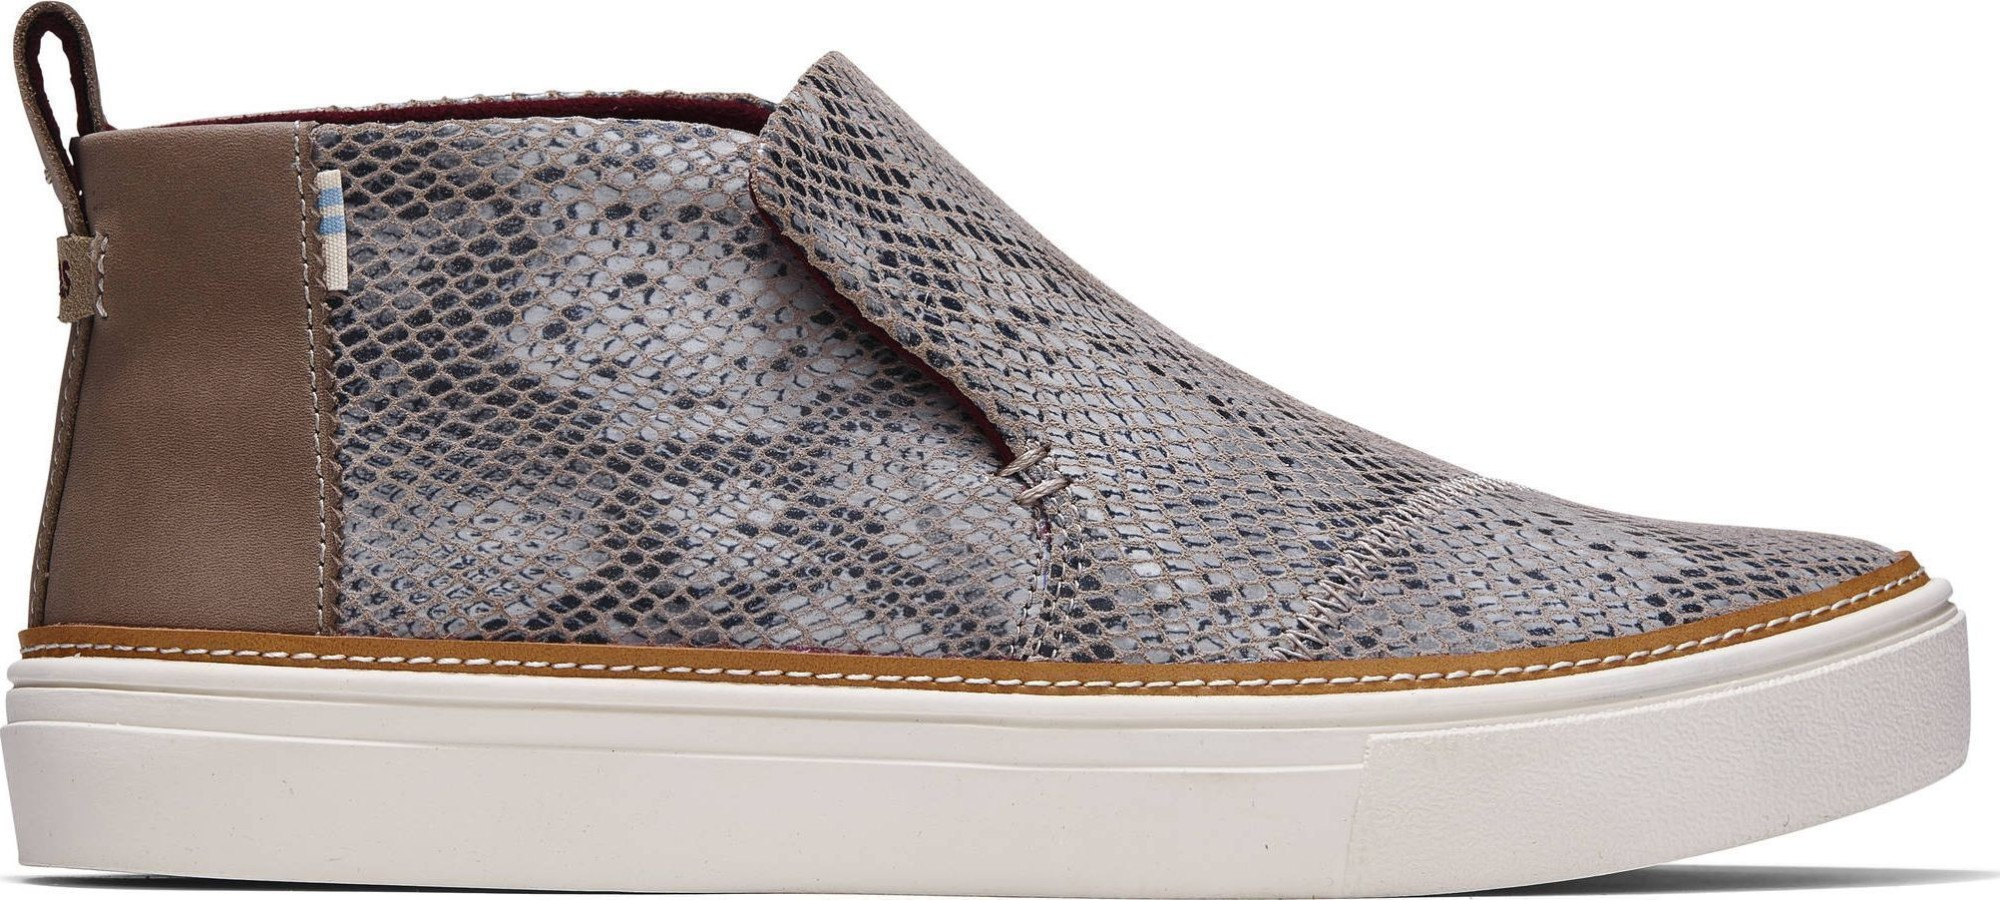 TOMS Snake Printed Suede Women's Paxton Slip-On Cobblestone 38,5